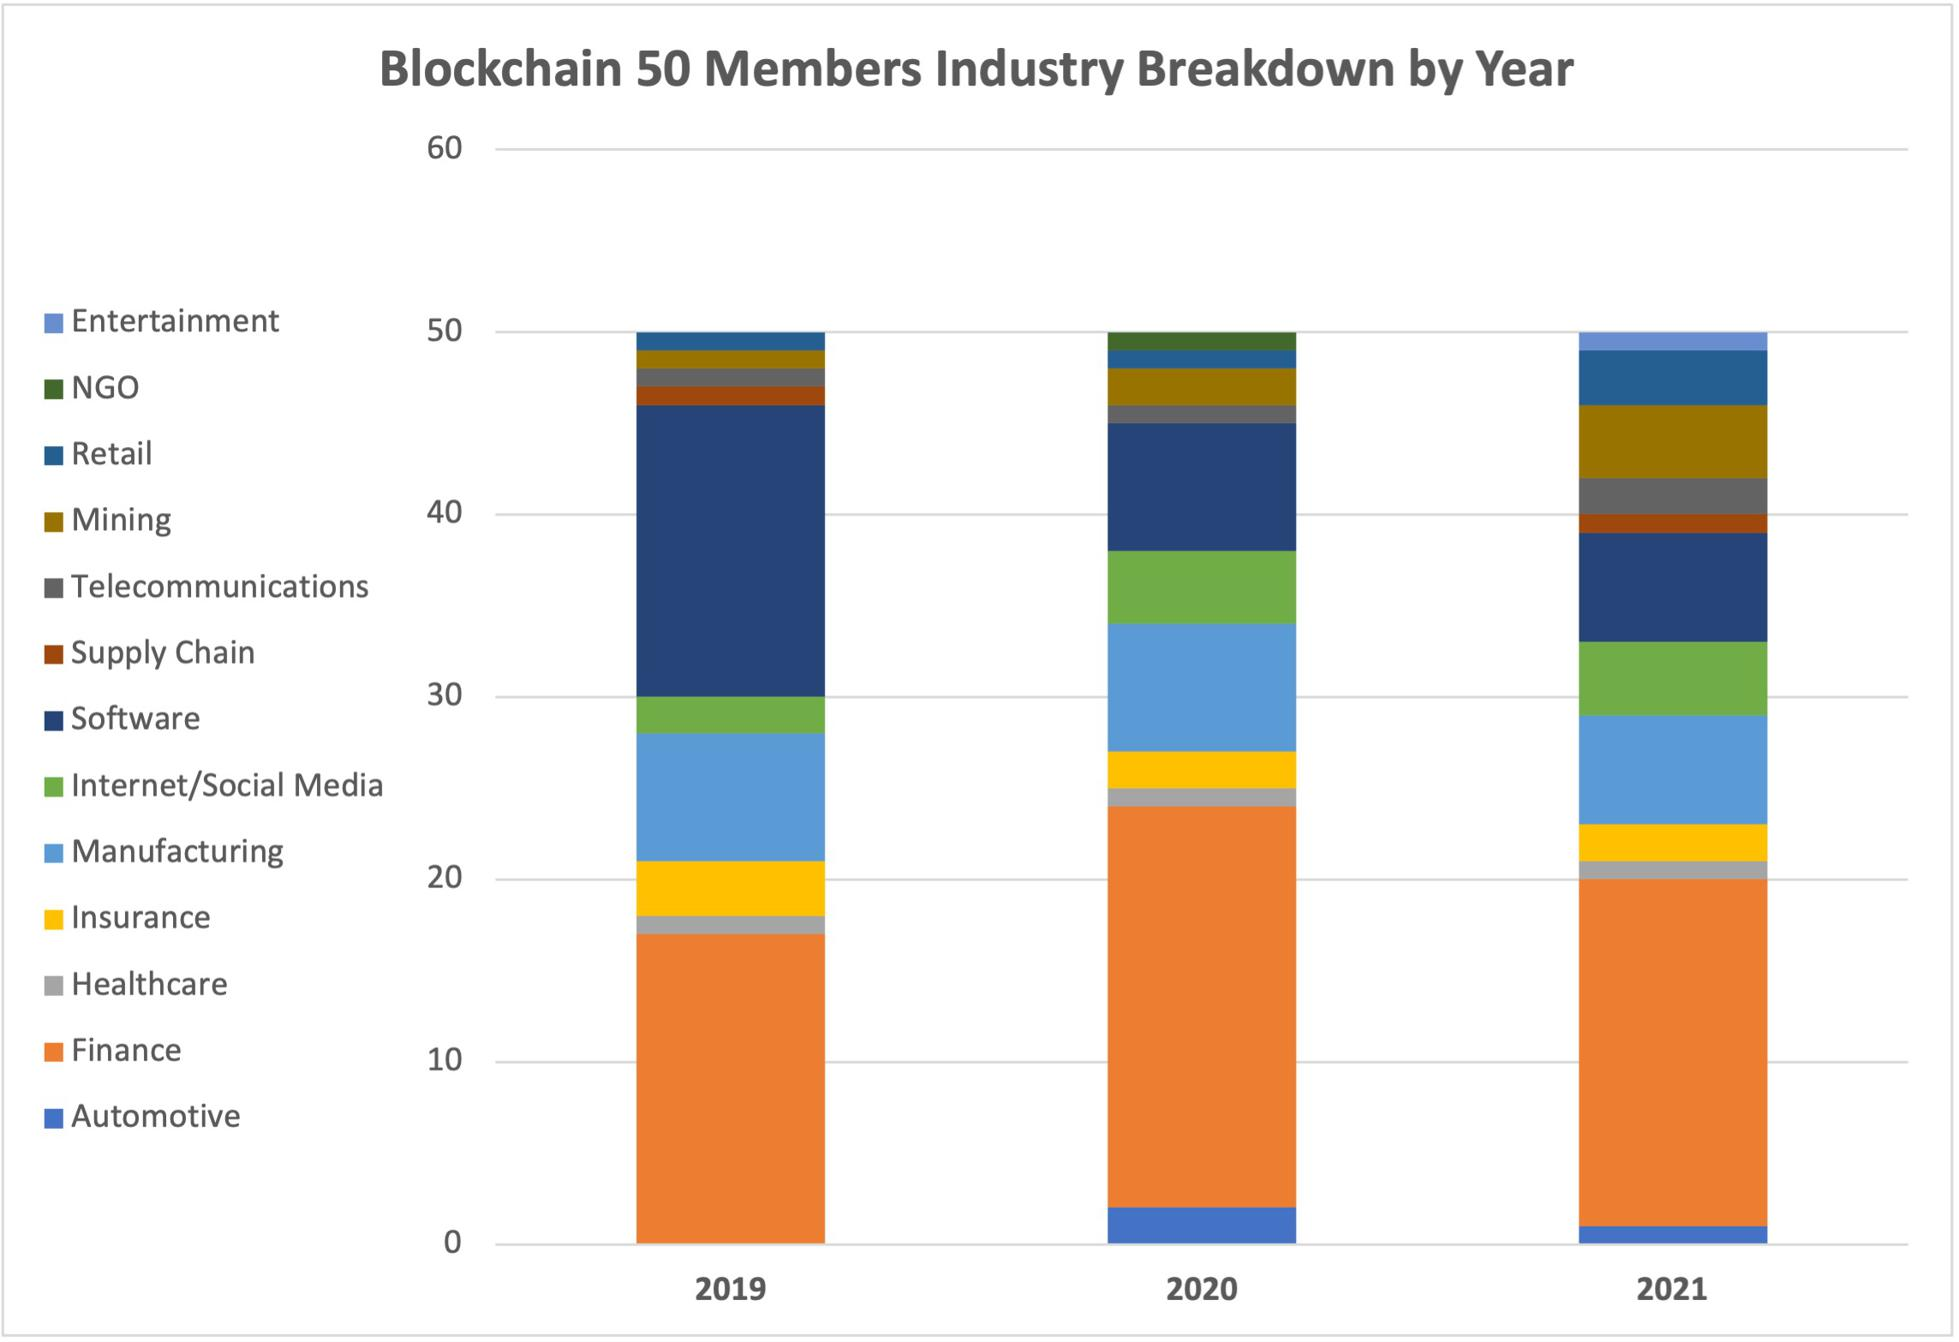 Blockchain 50 Members Industry Breakdown by Year